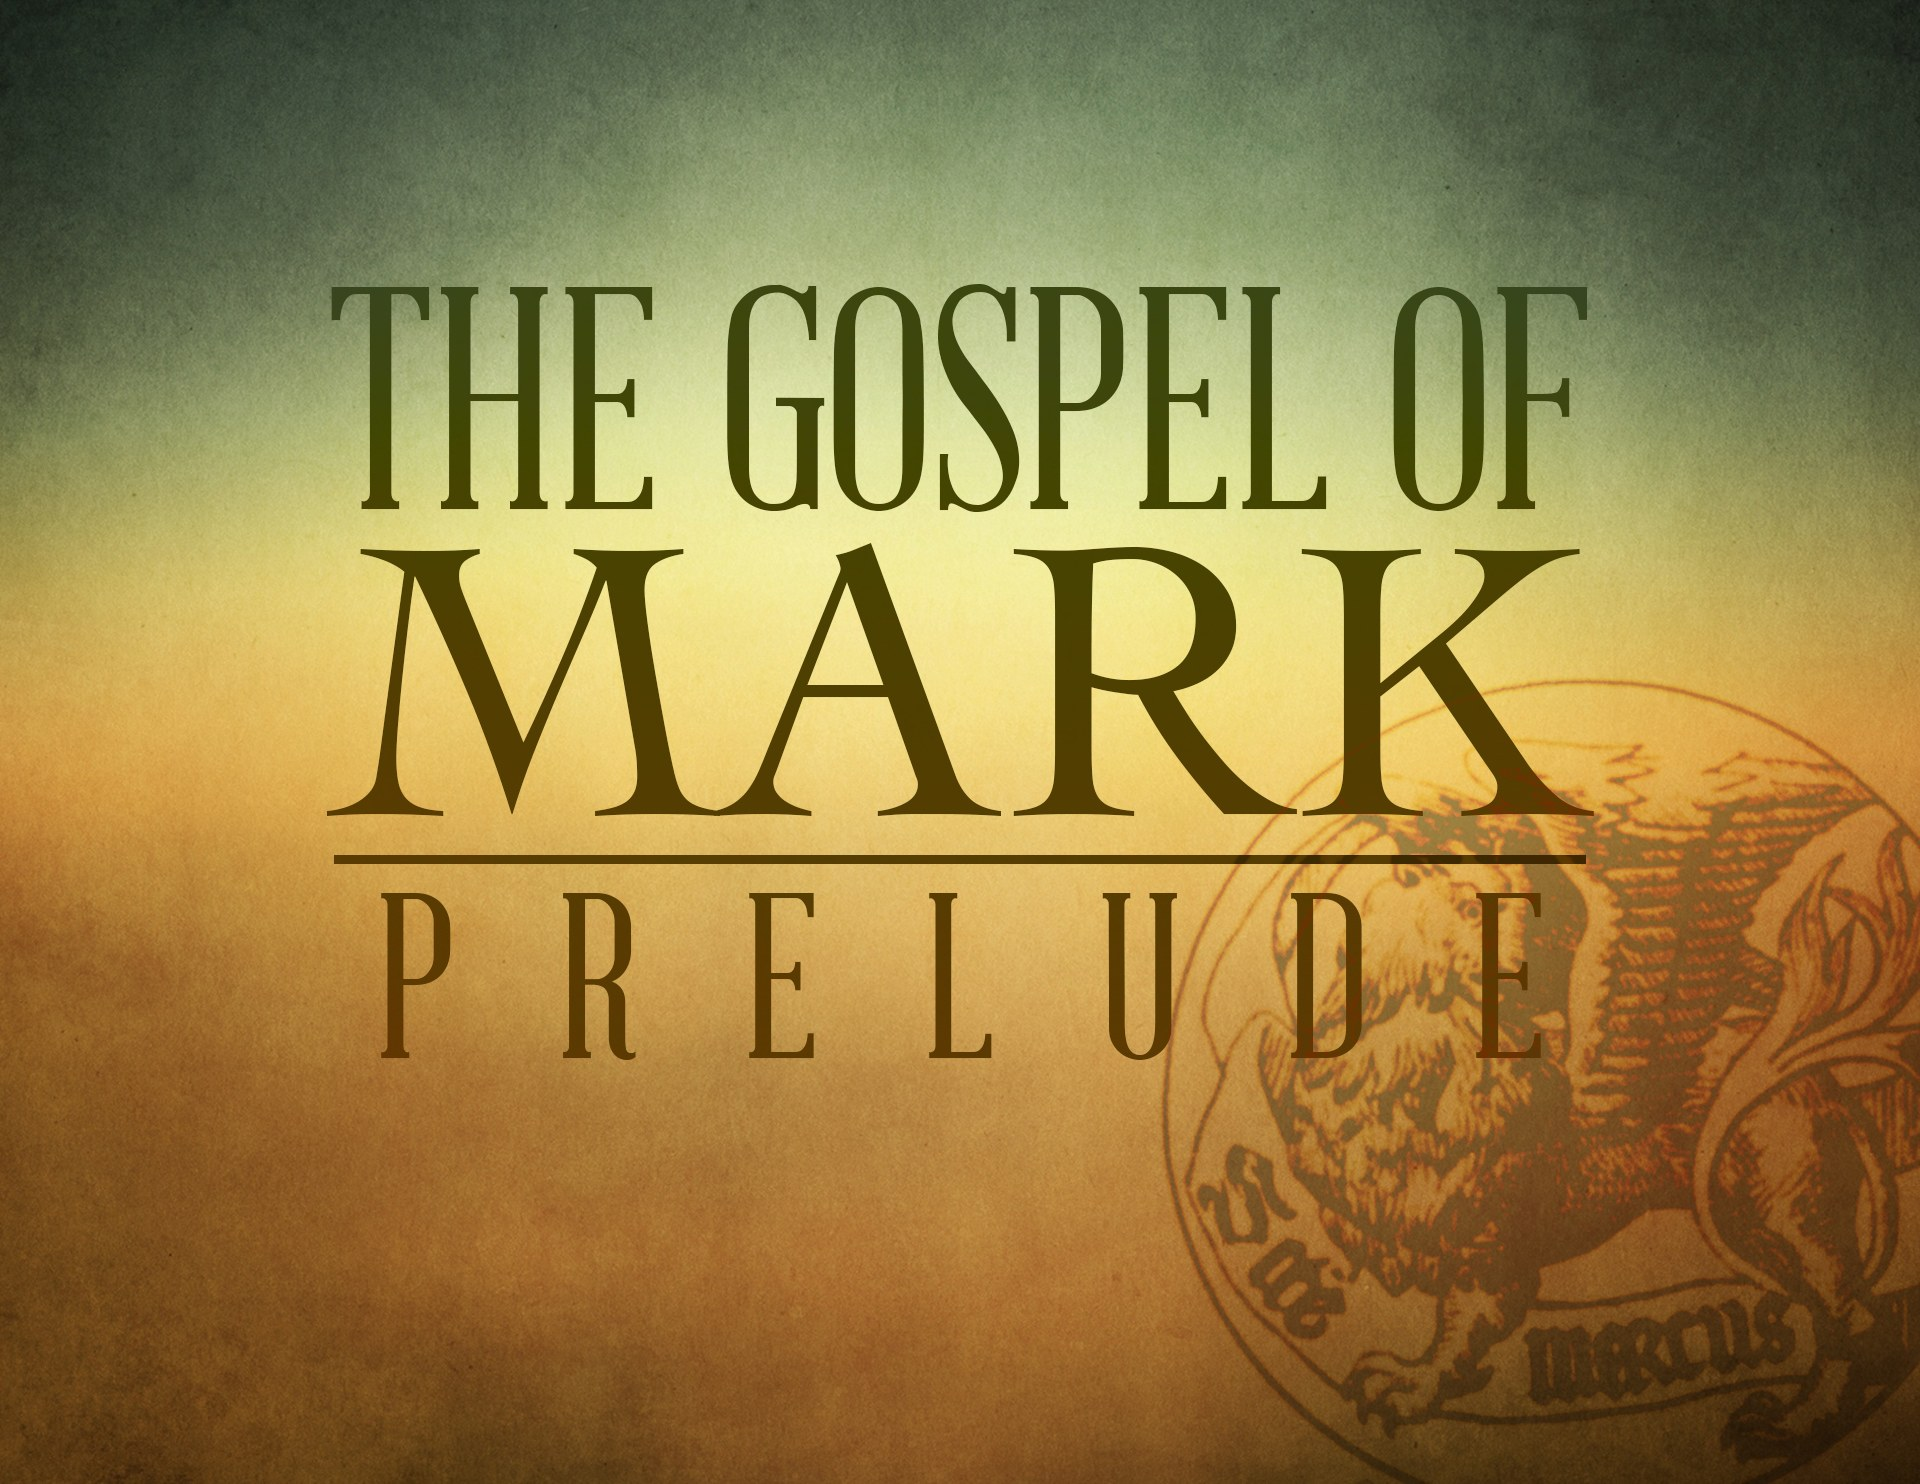 View all sermons in Mark: Prelude